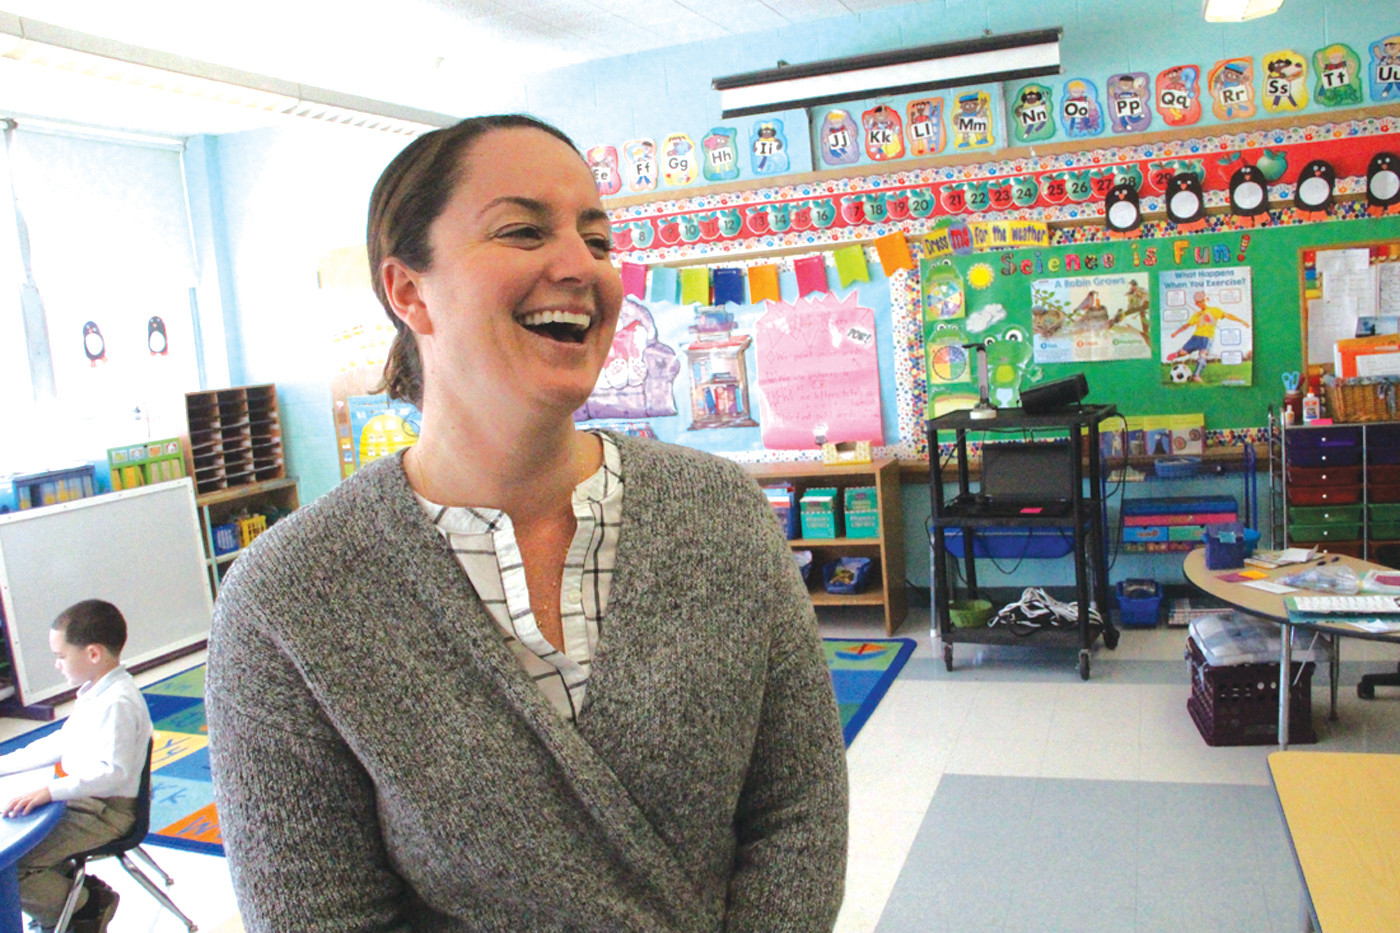 DOING WHAT MAKES HER HAPPY: Heather DeCoccio, kindergarten teacher at St. Kevin School, said that teaching at her alma mater makes her happy, so she doesn't think so much about salary concerns.